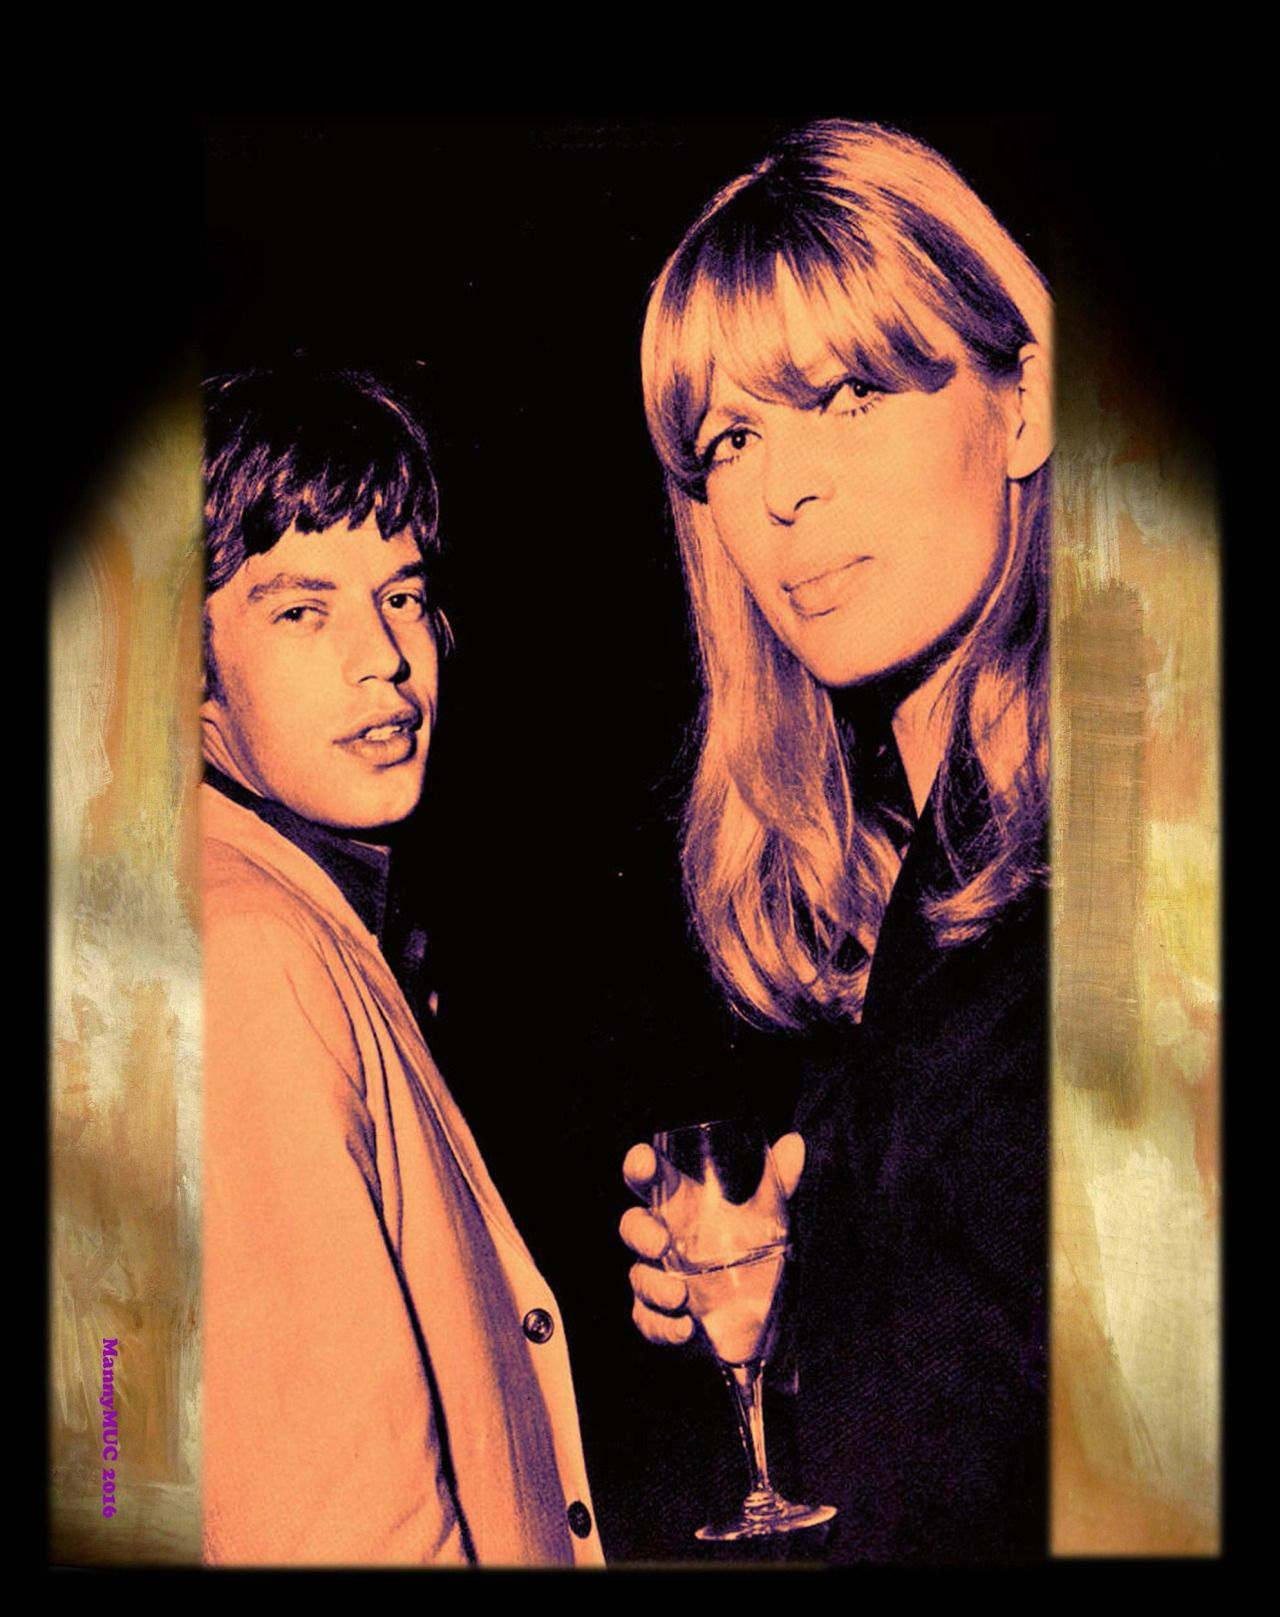 Nico with Mick Jagger in the 1960s